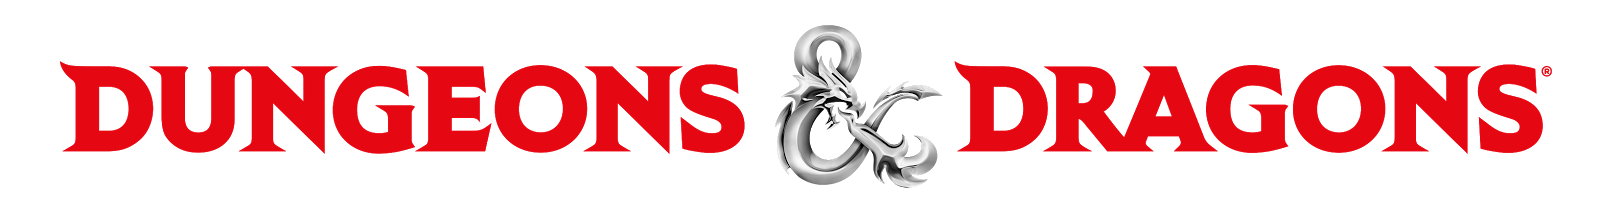 Dungeons & Dragons Logo